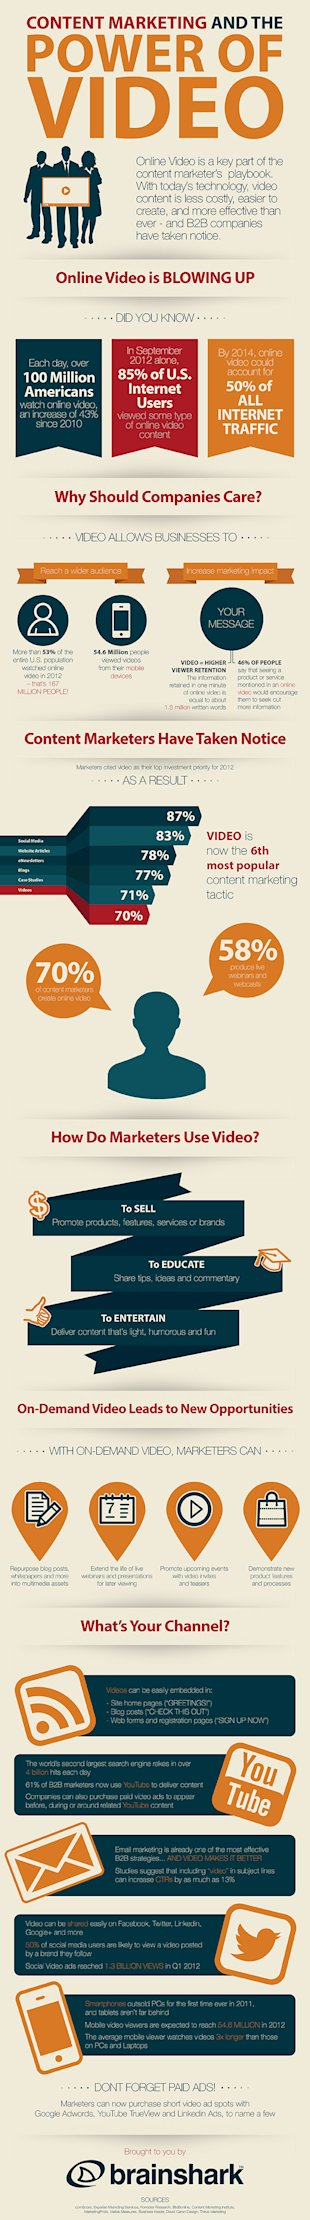 5 Reasons to Use Video in B2B Marketing [Infographic] image video marketing infographic